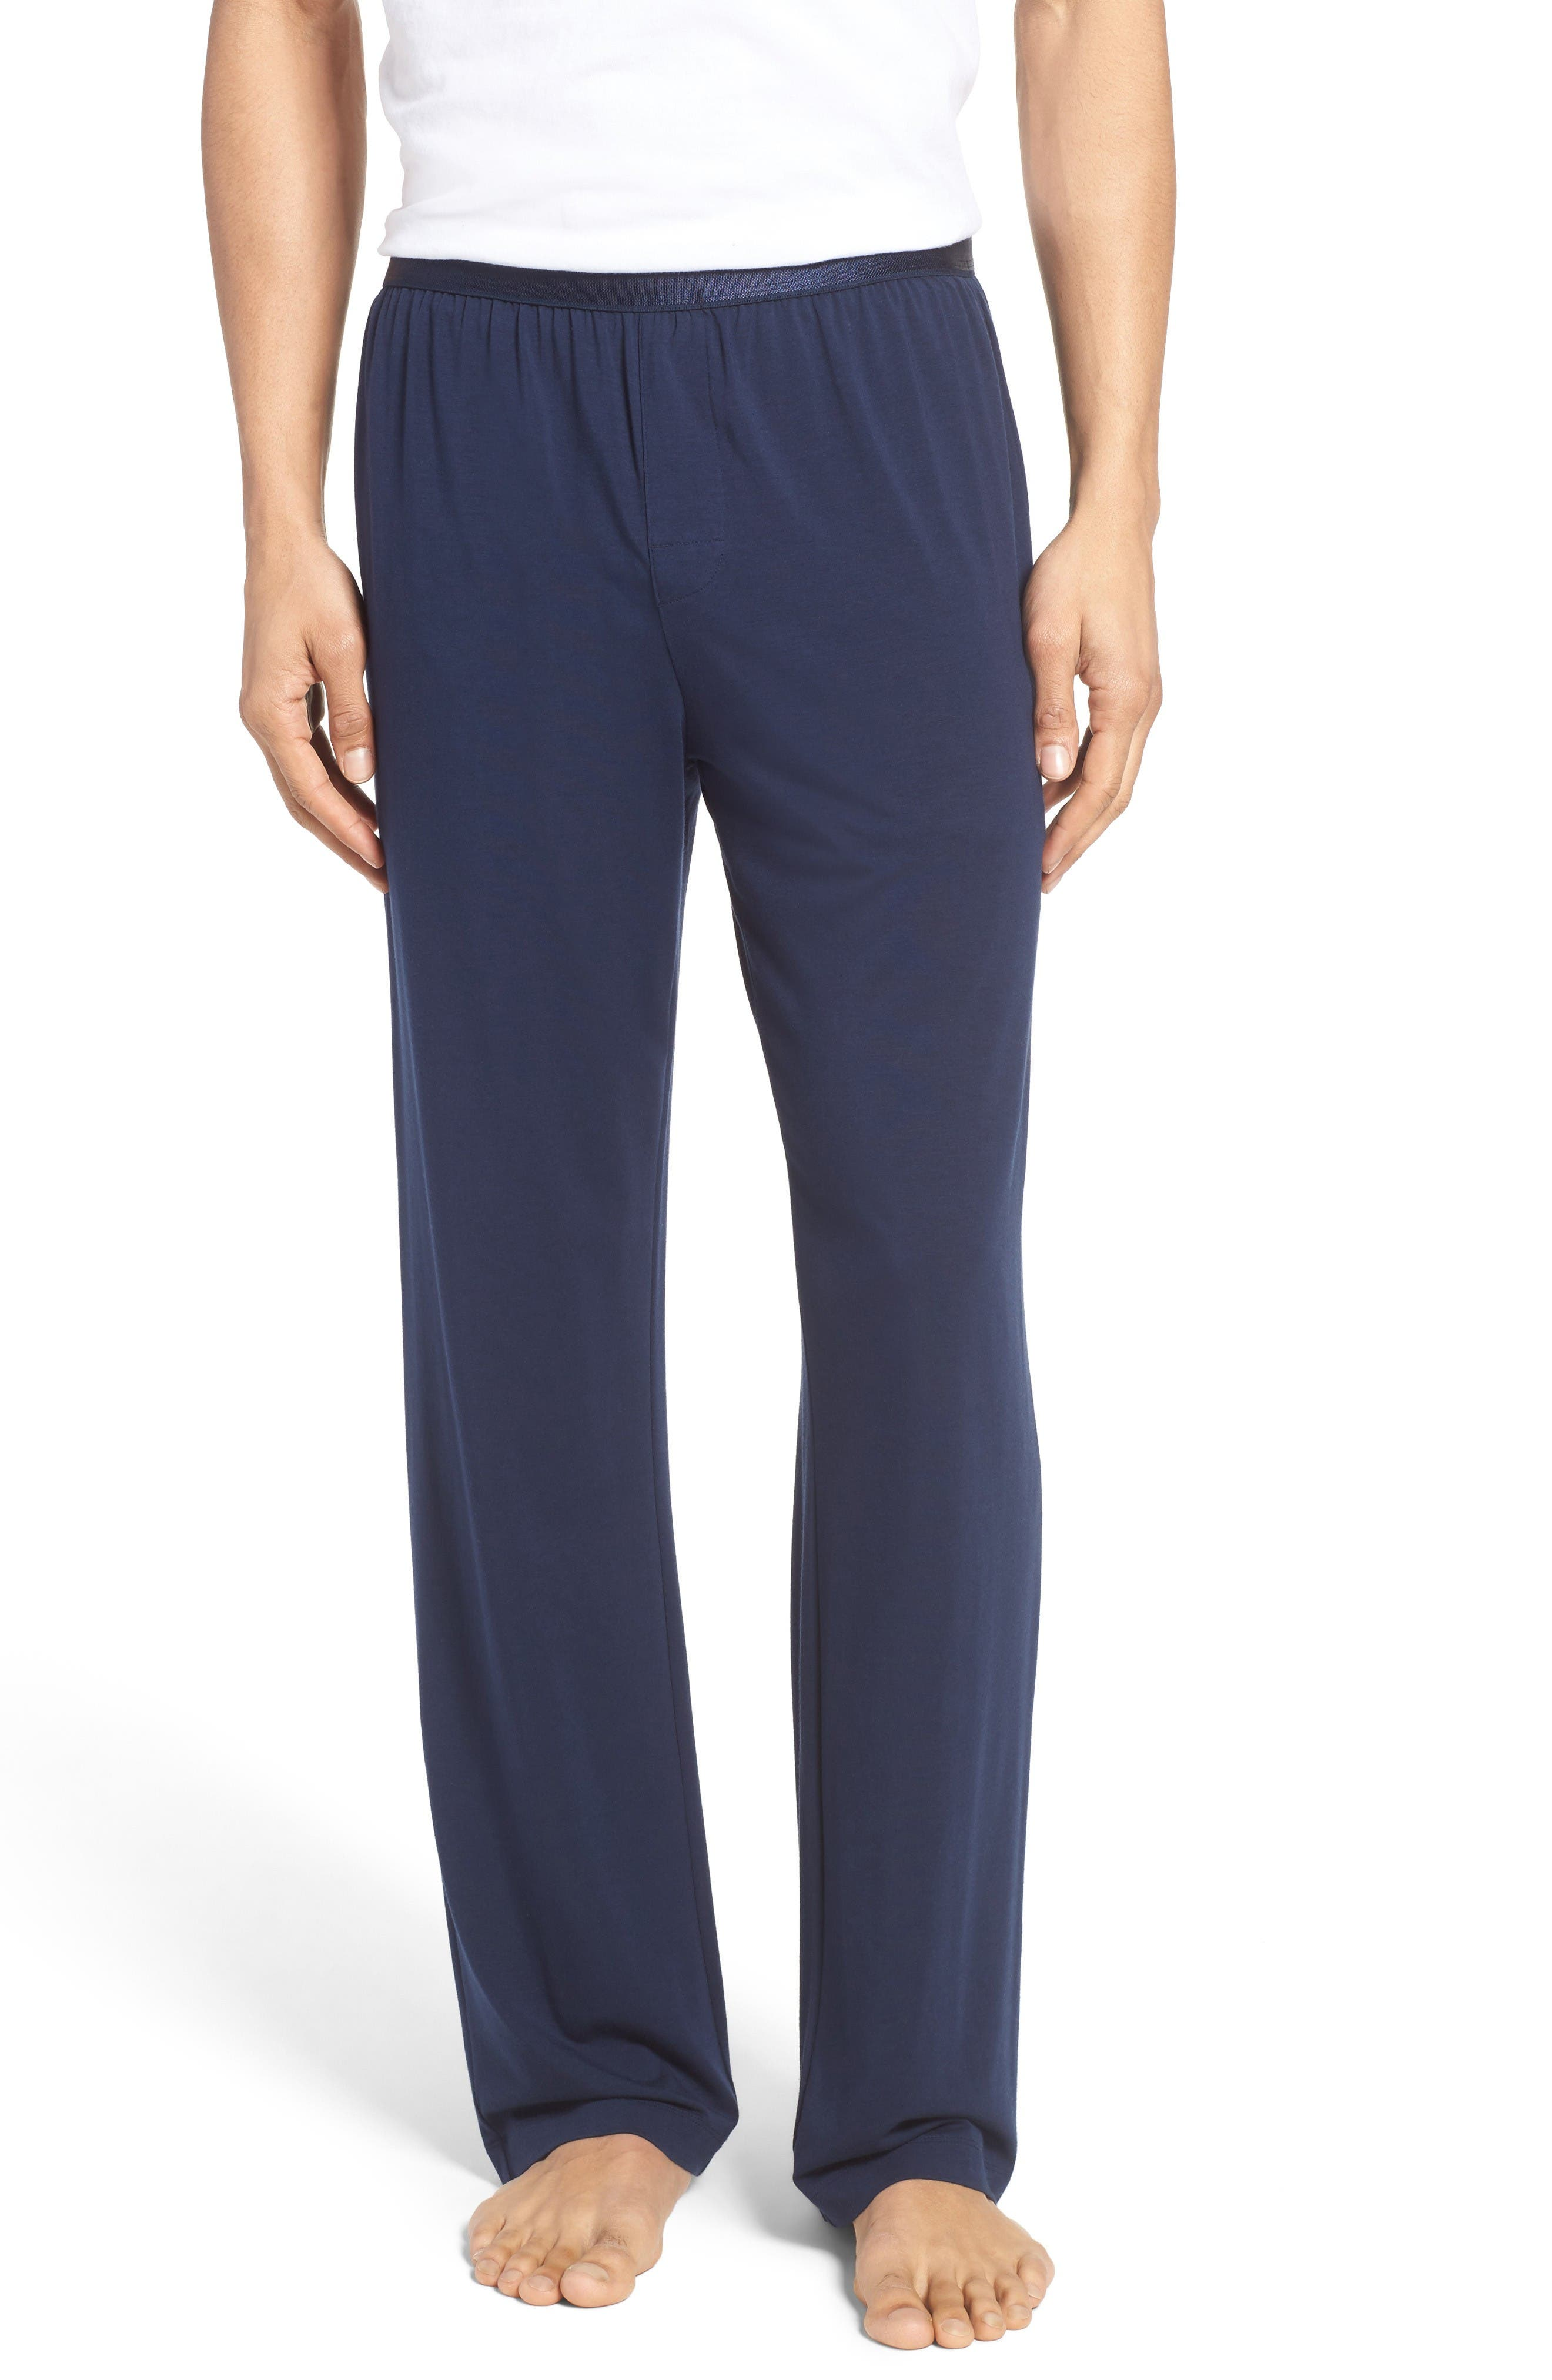 Nordstrom Men's Shop Micromodal Blend Lounge Pants